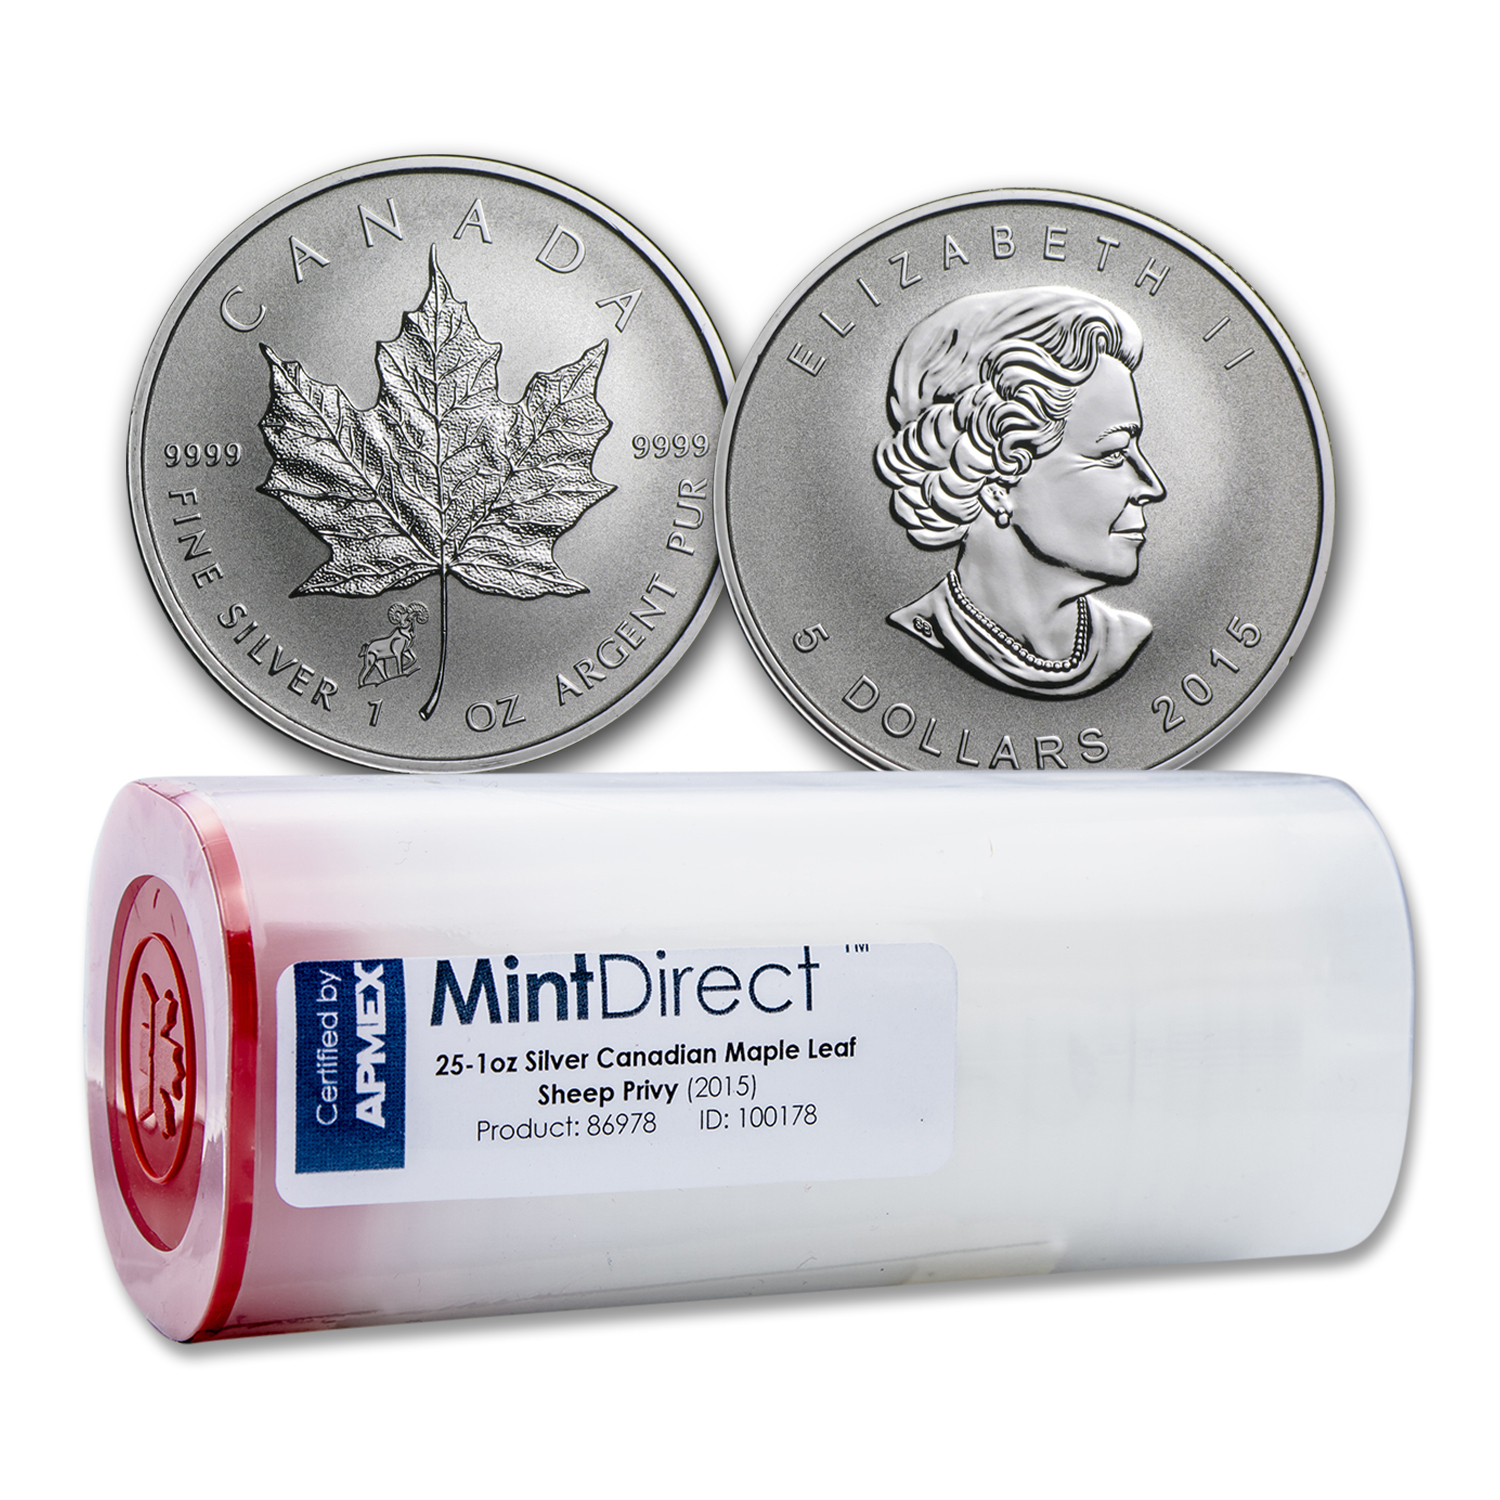 2015 Silver Maple Leaf Sheep Privy (25-Coin MintDirect® Tube)